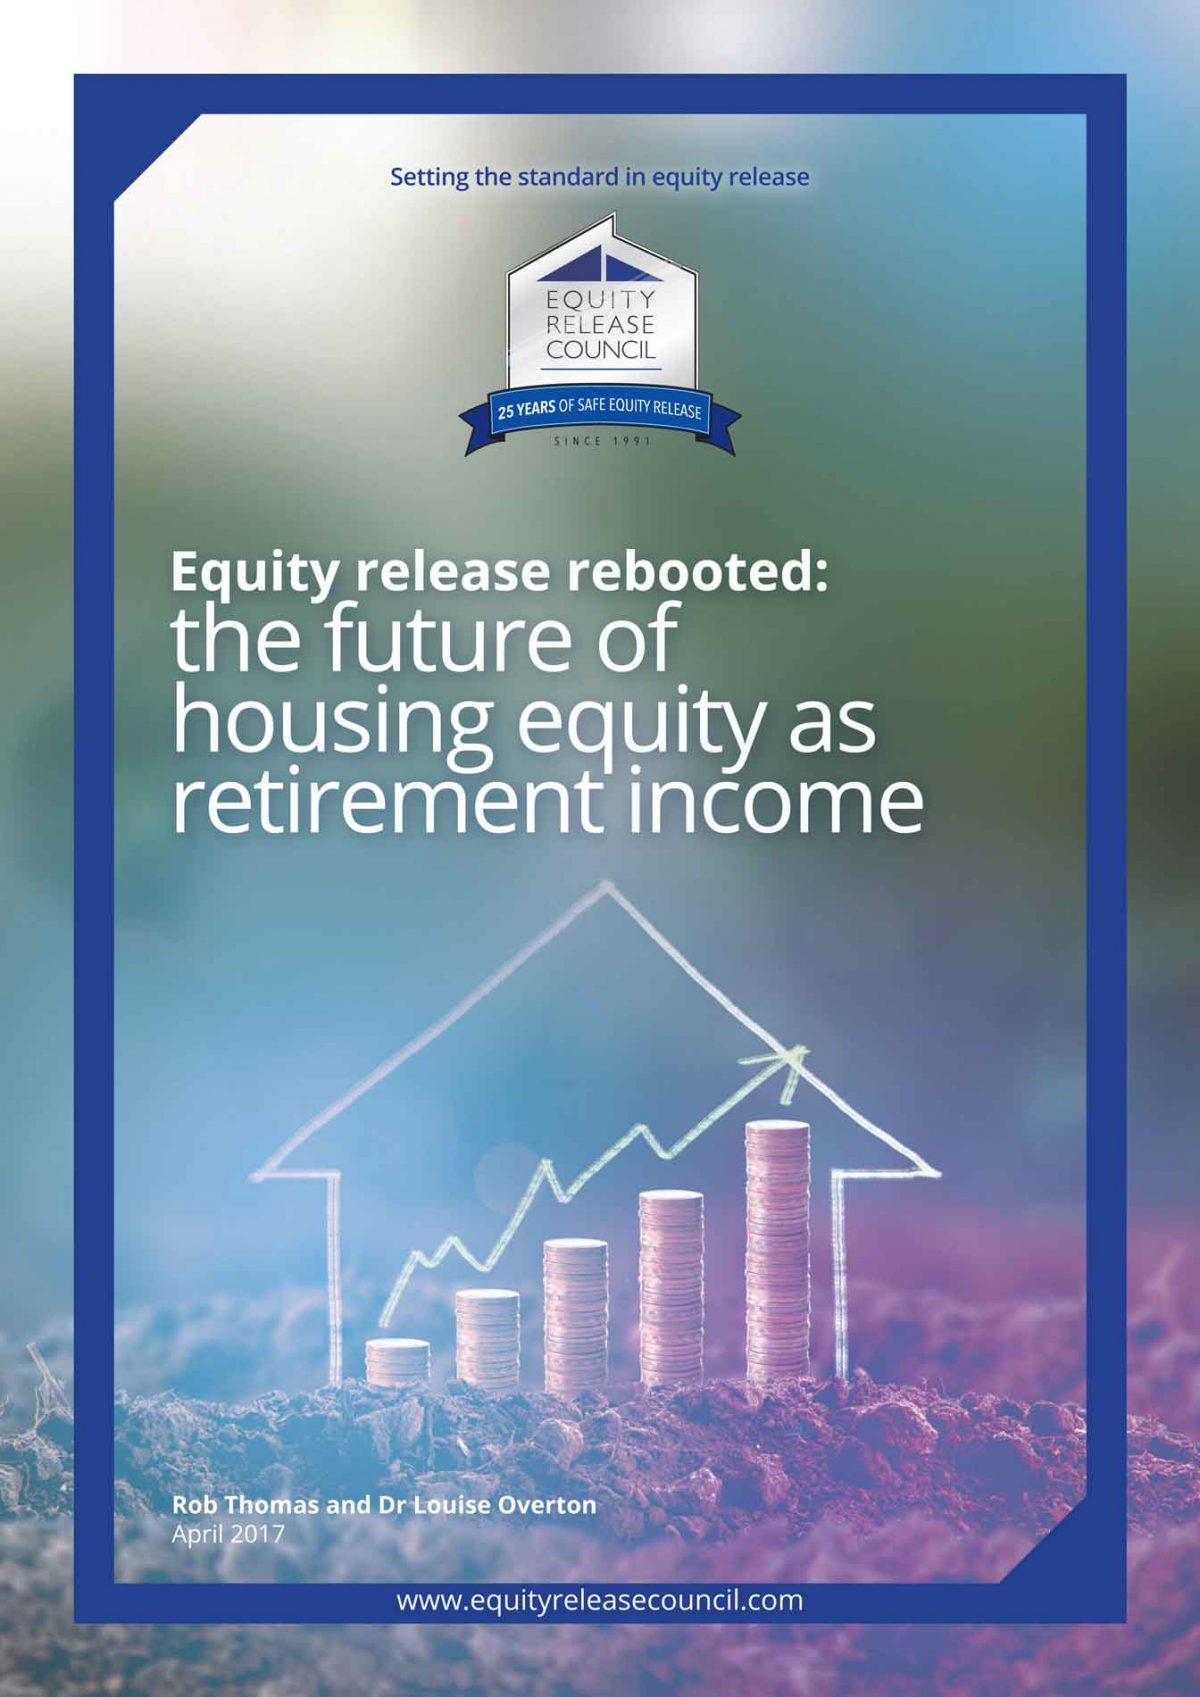 The Future of Housing Equity As Retirement Income